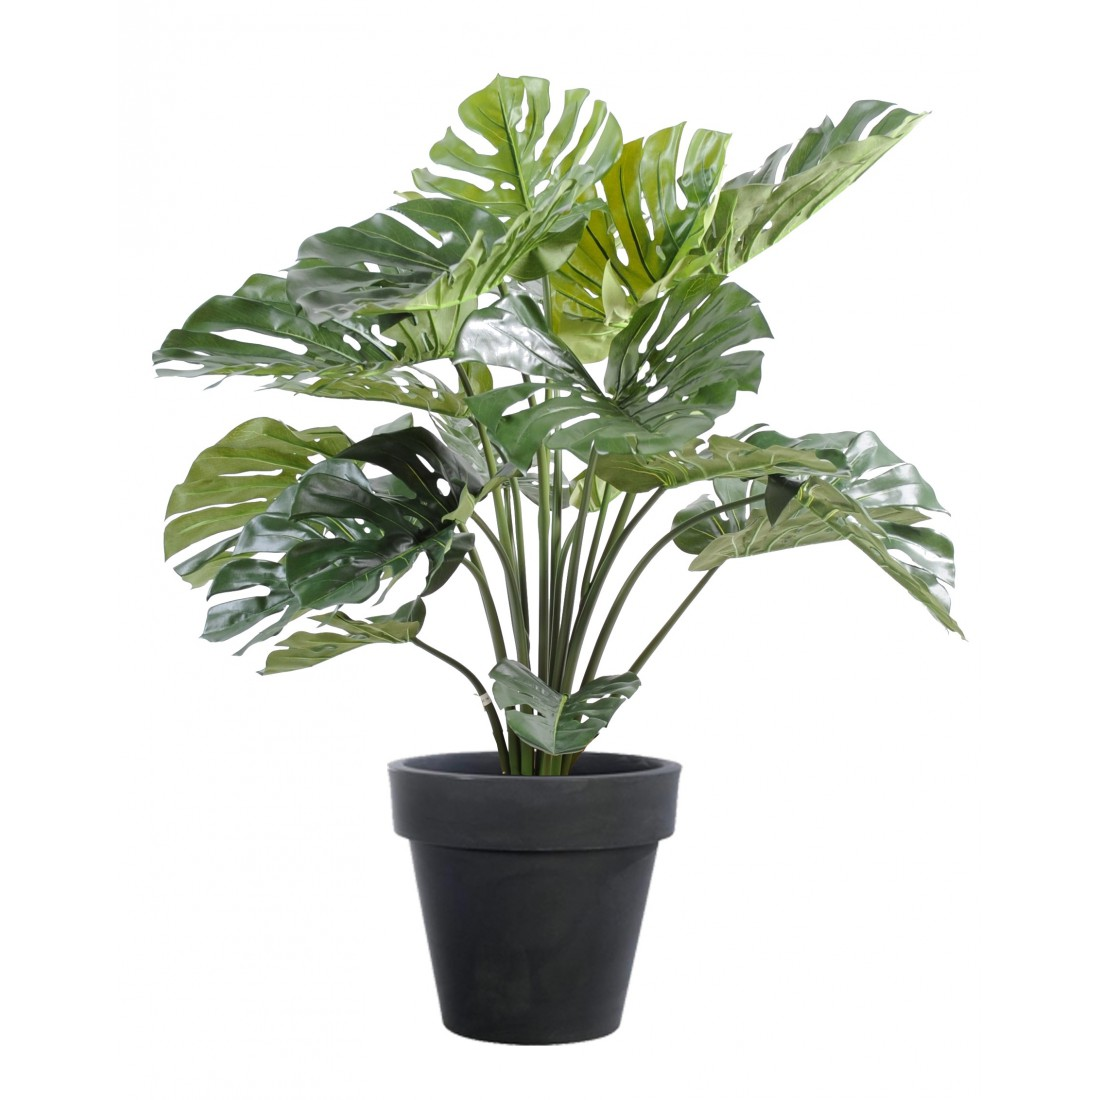 philodendron geant artificiel 110 cm plantes vertes reflets nature lyon. Black Bedroom Furniture Sets. Home Design Ideas